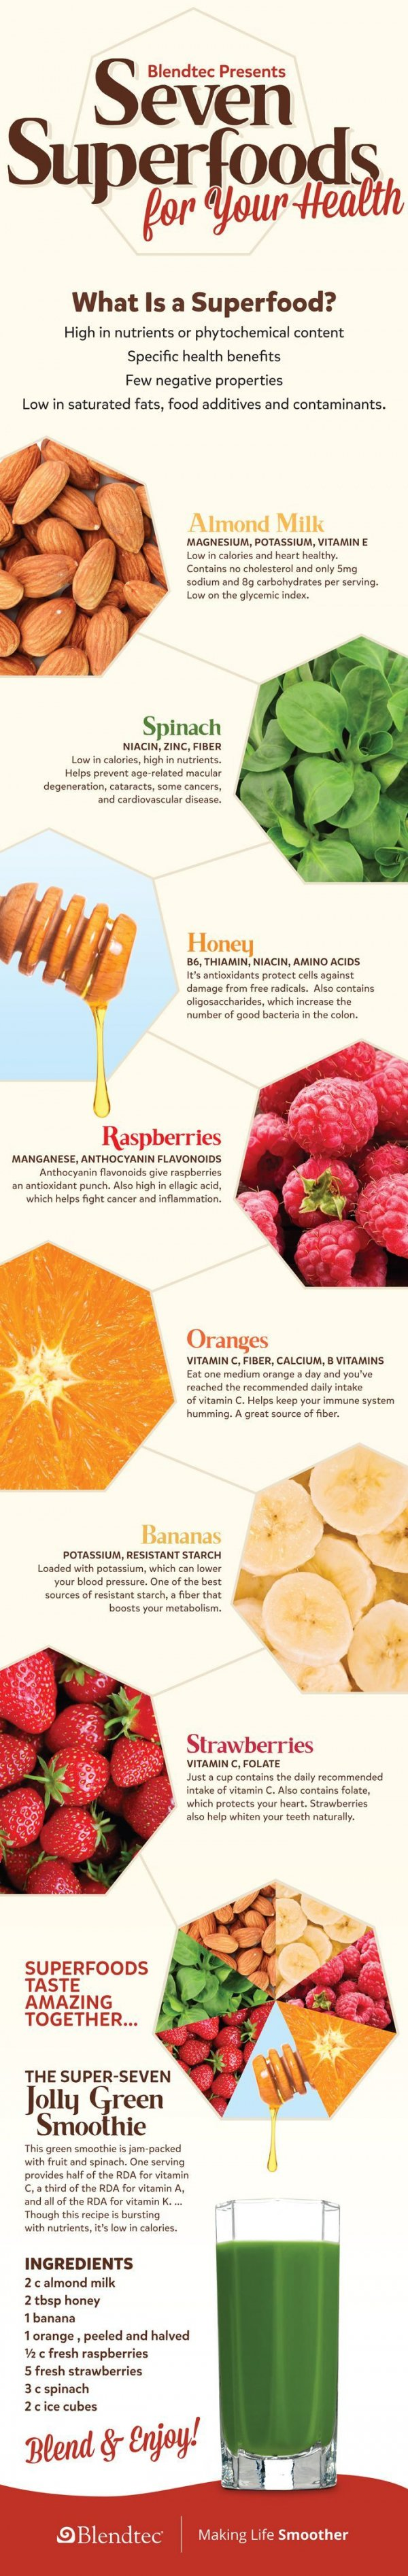 advertising,brand,Seven,Superfoods,for,